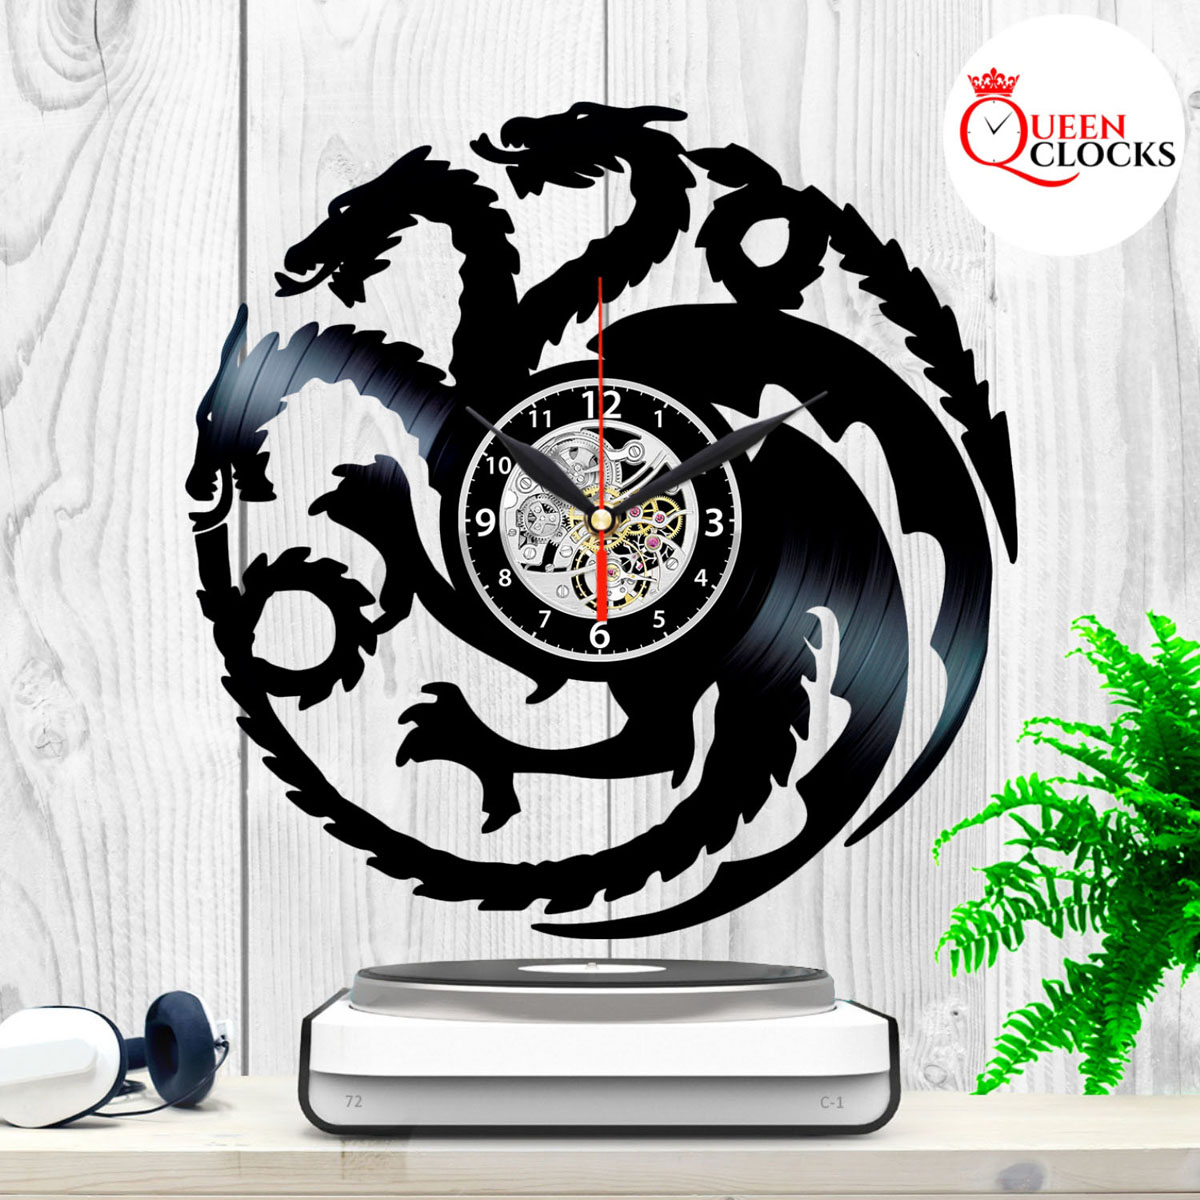 Game of Thrones House Logo Targaryen Stark Vinyl Record Wall Clock Decor Gift